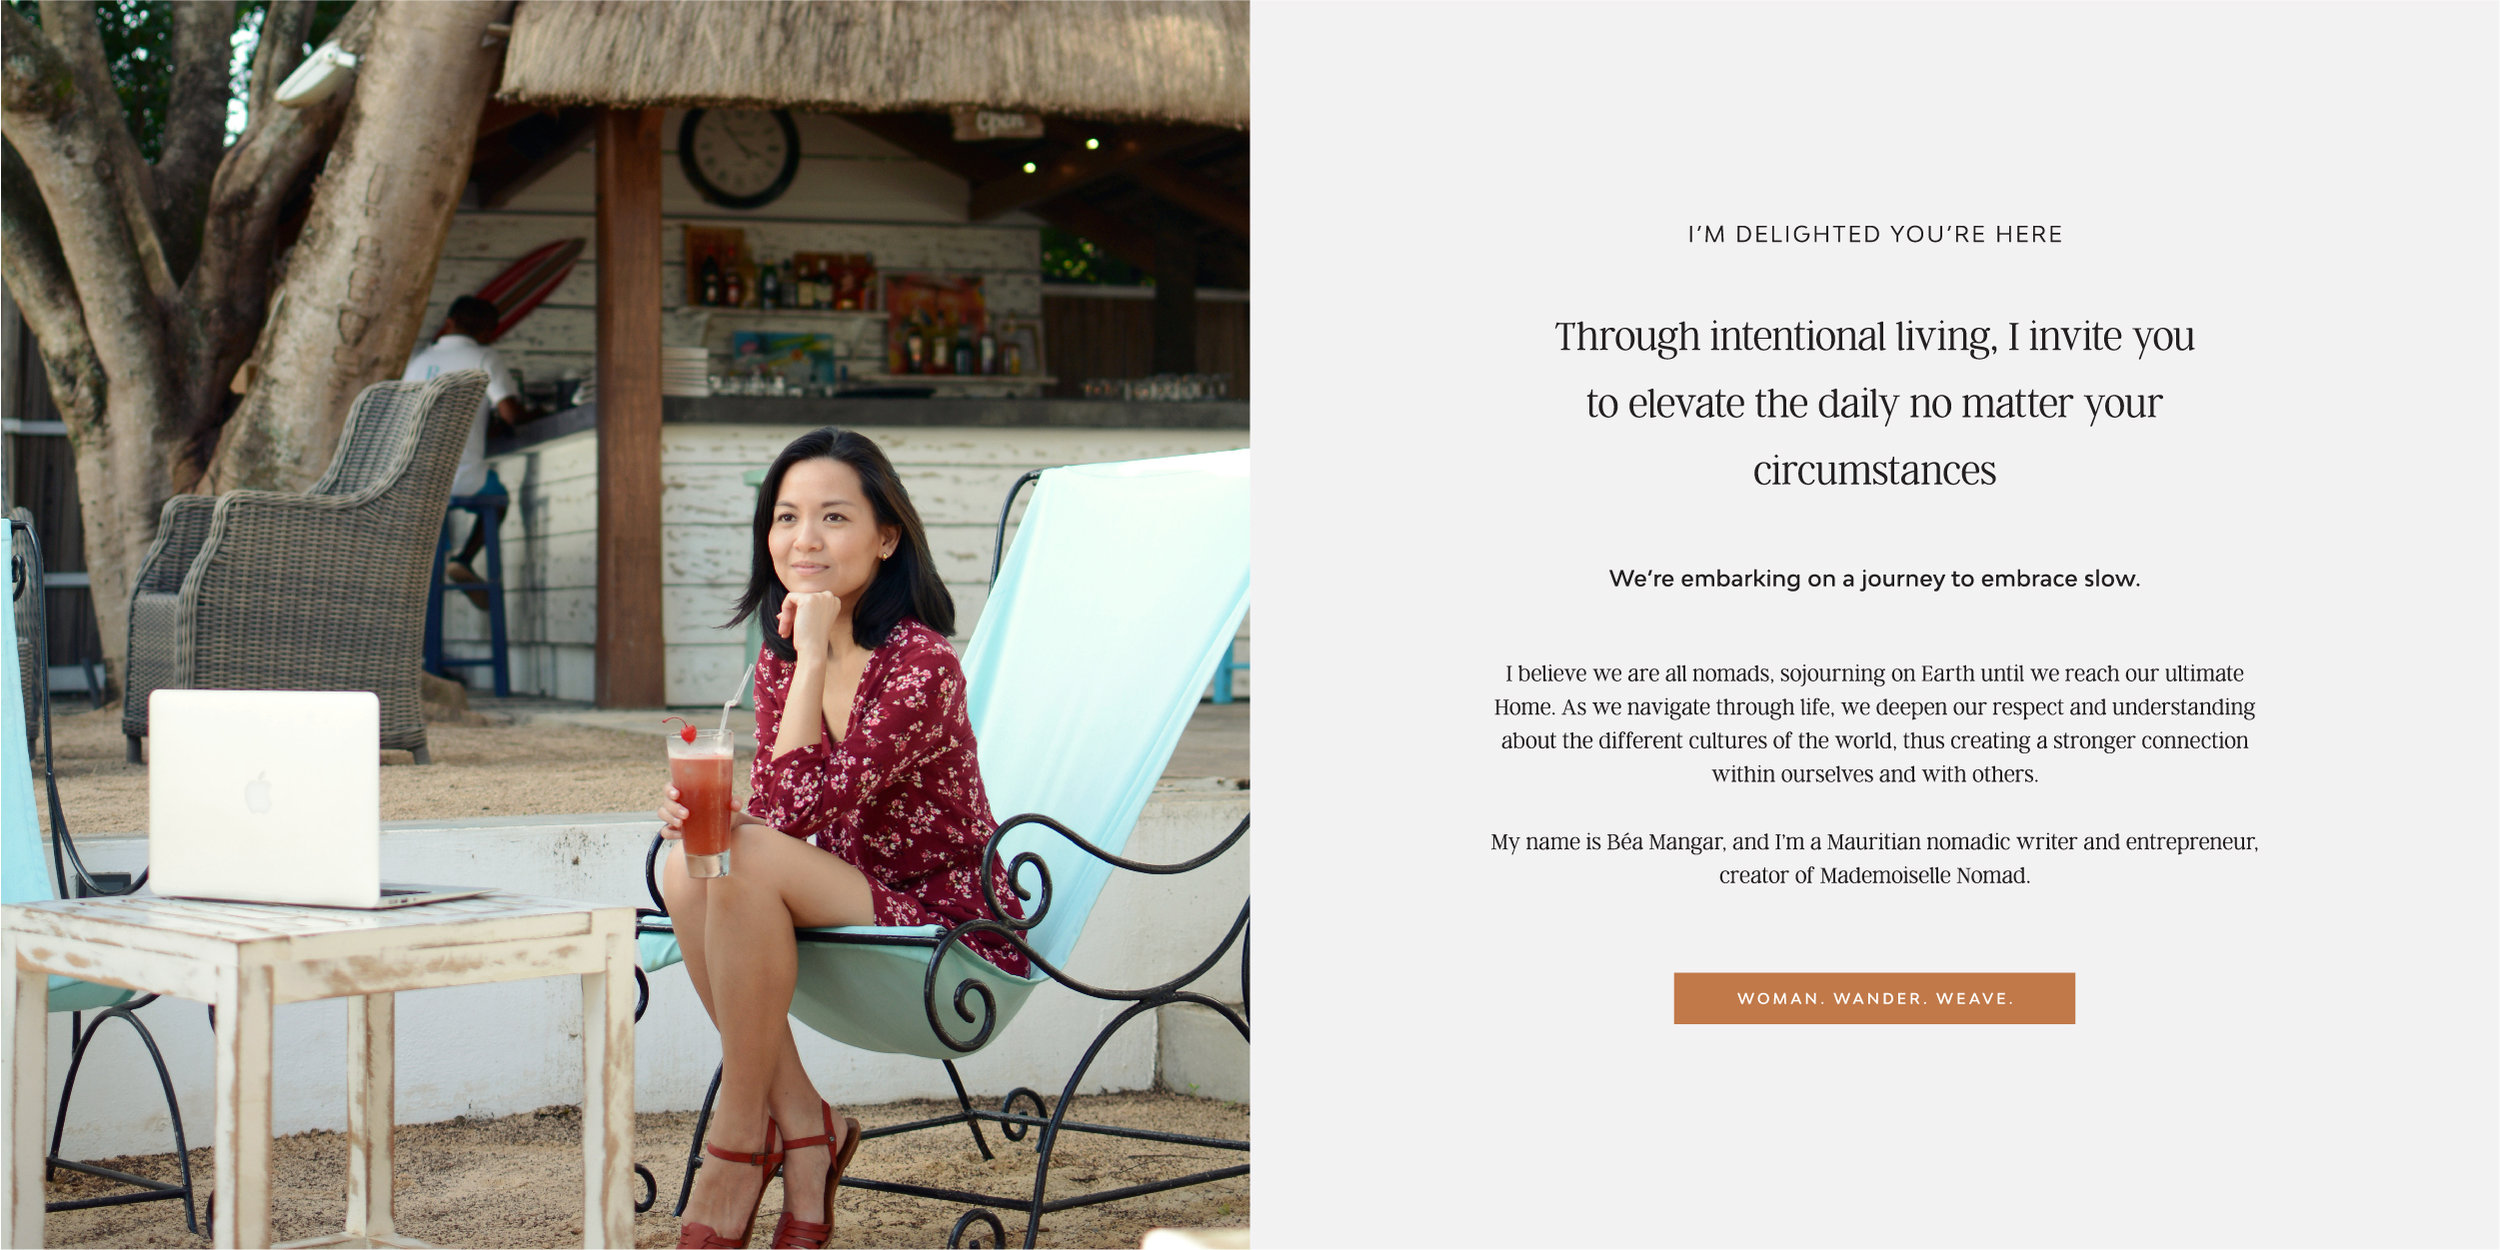 Brand design and development, and strategy, for slow living and lifestyle brand, Beatrice Mangar, Mademoiselle Nomad.